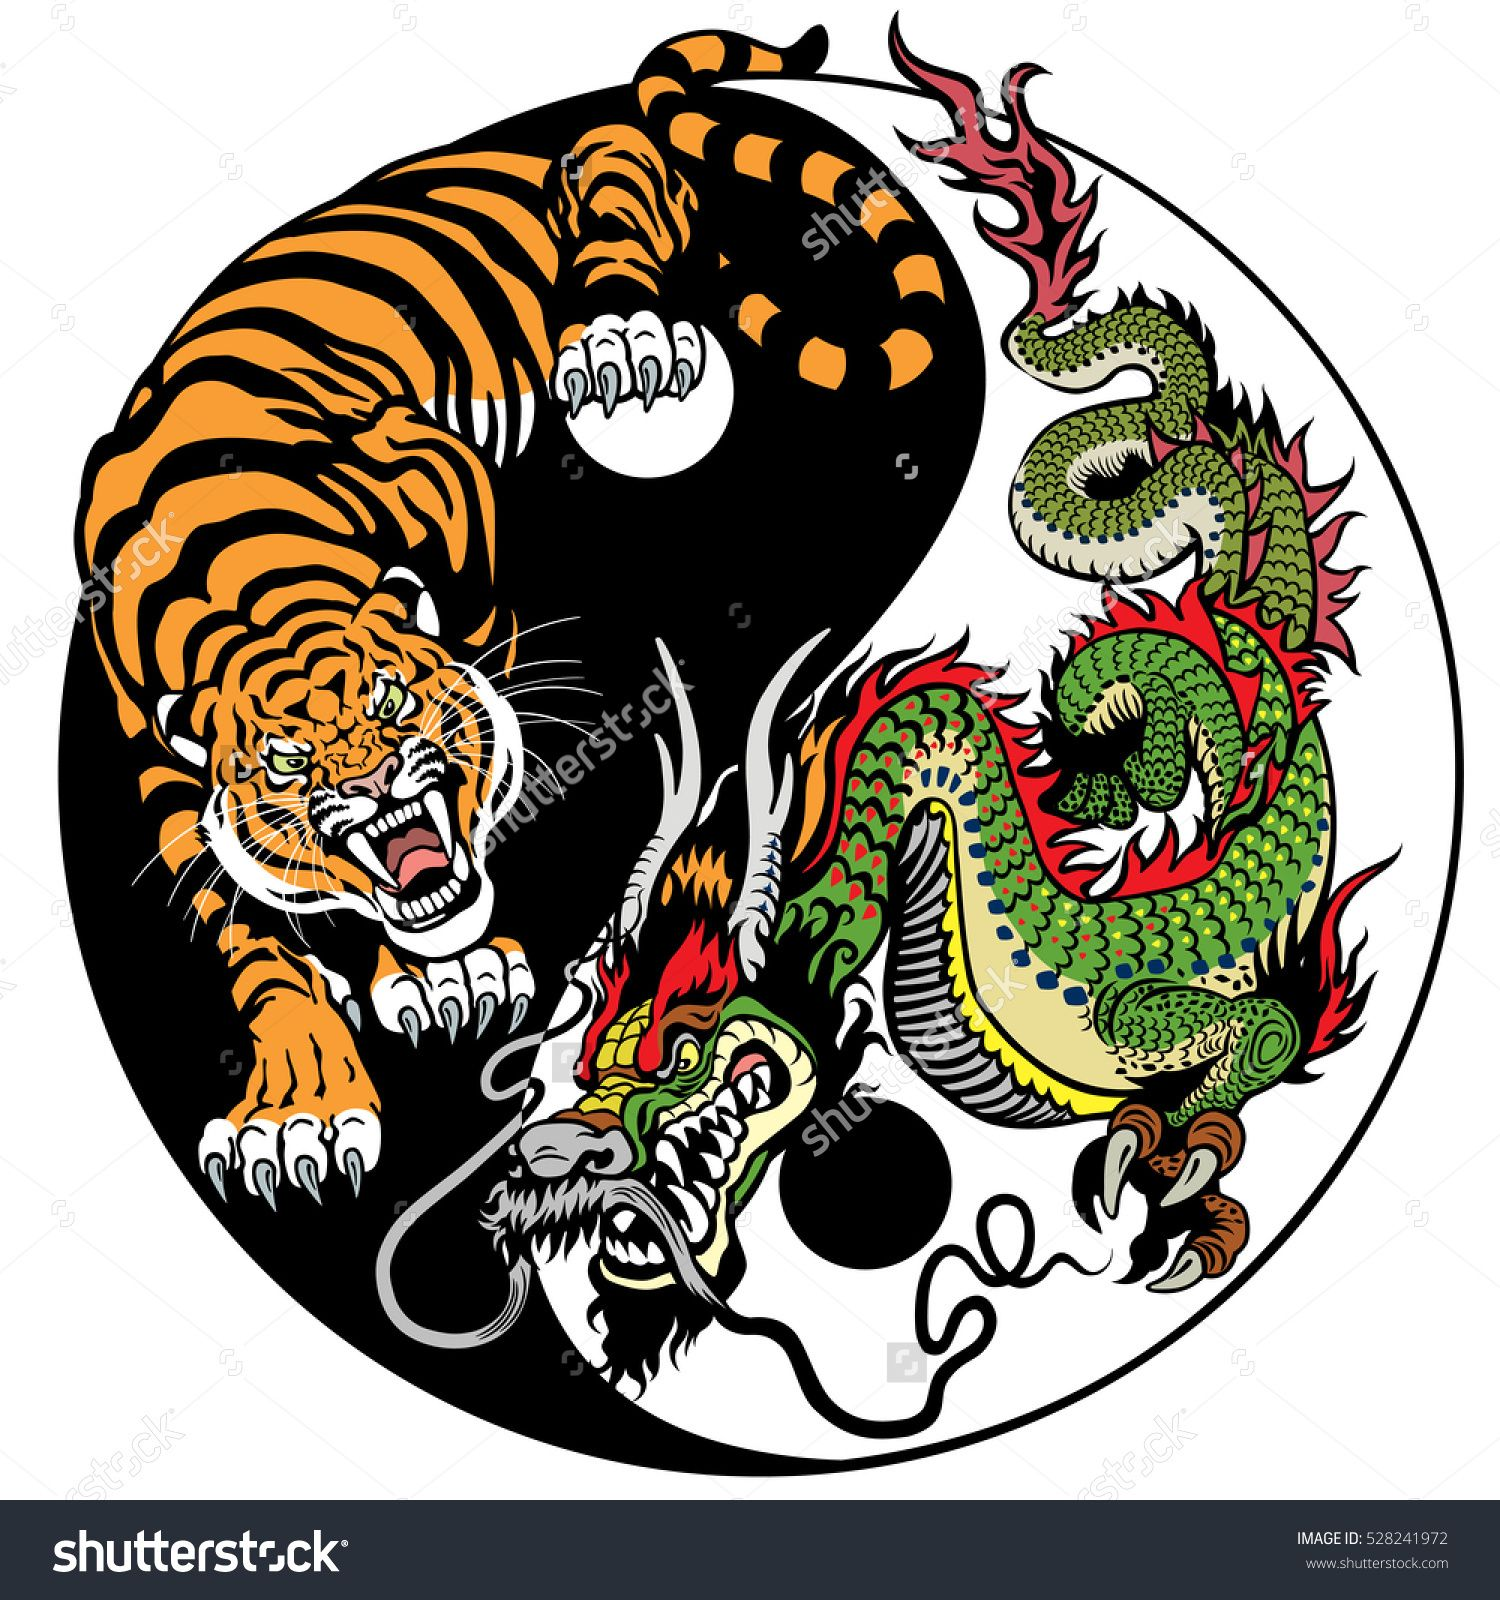 dragon and tiger yin yang symbol of harmony and balance Koi Fish Yin Yang Fish